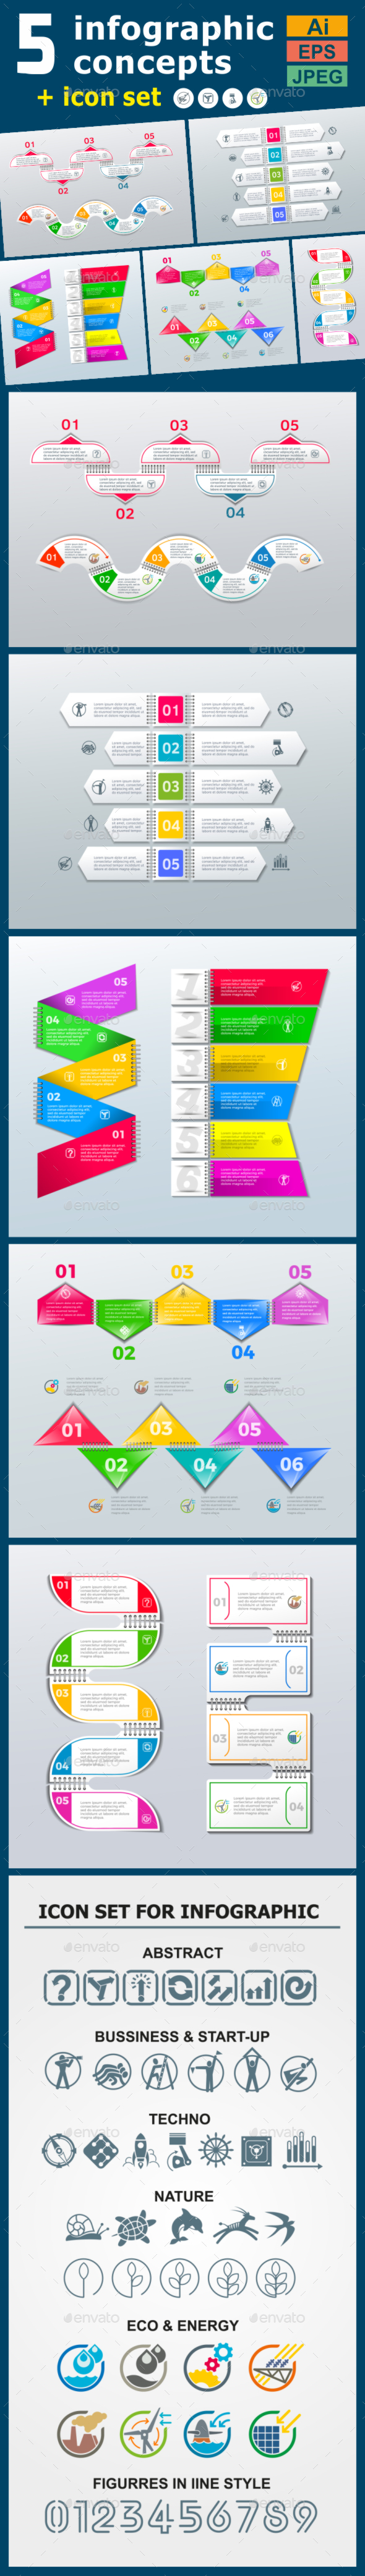 Infographic template themeforest